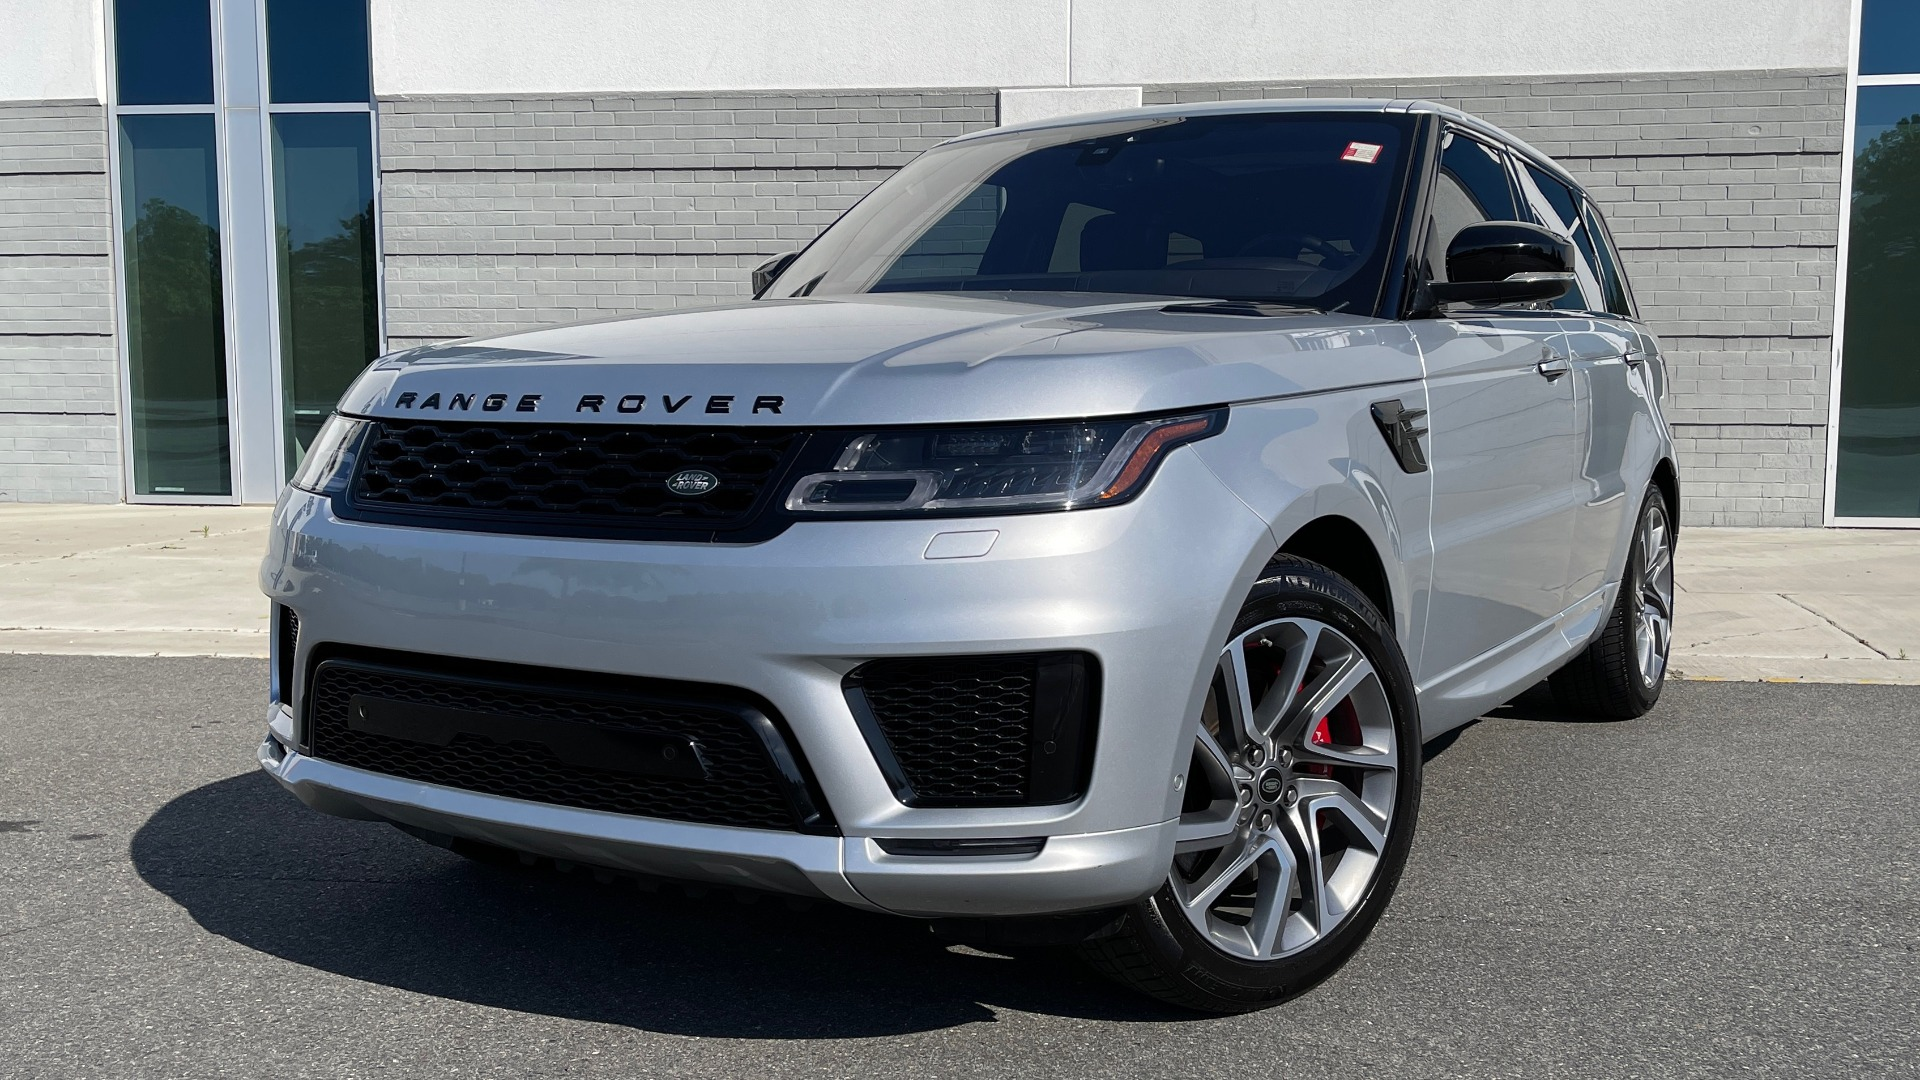 Used 2019 Land Rover RANGE ROVER SPORT HSE DYNAMIC / 3.0L SC V6 / 8-SPD / APPLE / NAV / SUNROOF / REARVIEW for sale Sold at Formula Imports in Charlotte NC 28227 1